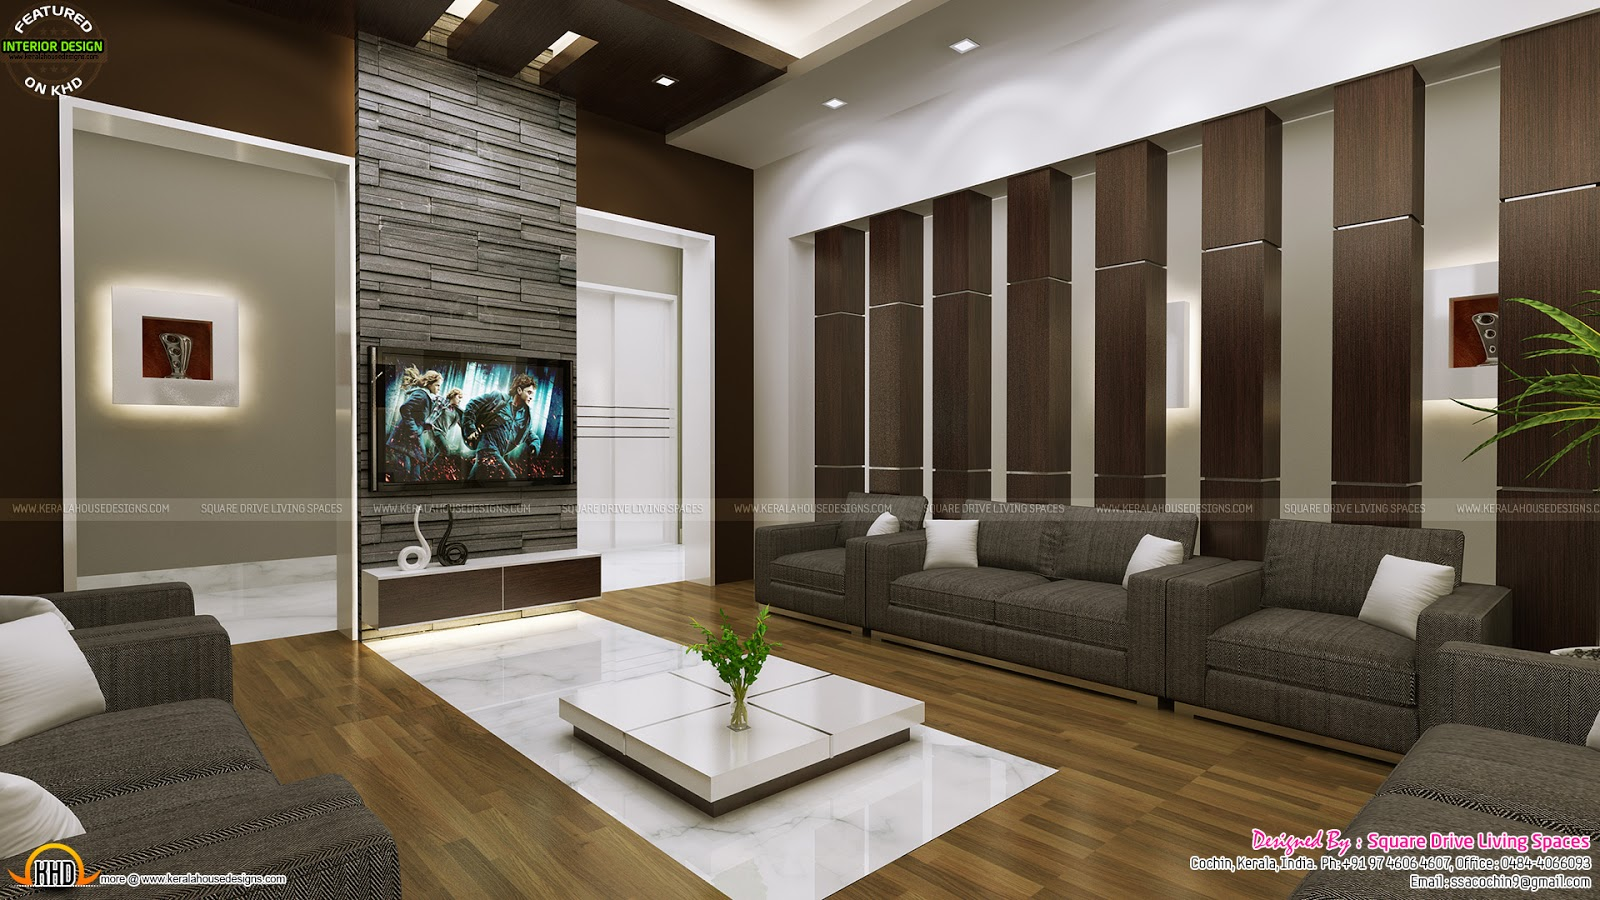 Attractive home interior ideas kerala home design and floor plans Living room interior designs images